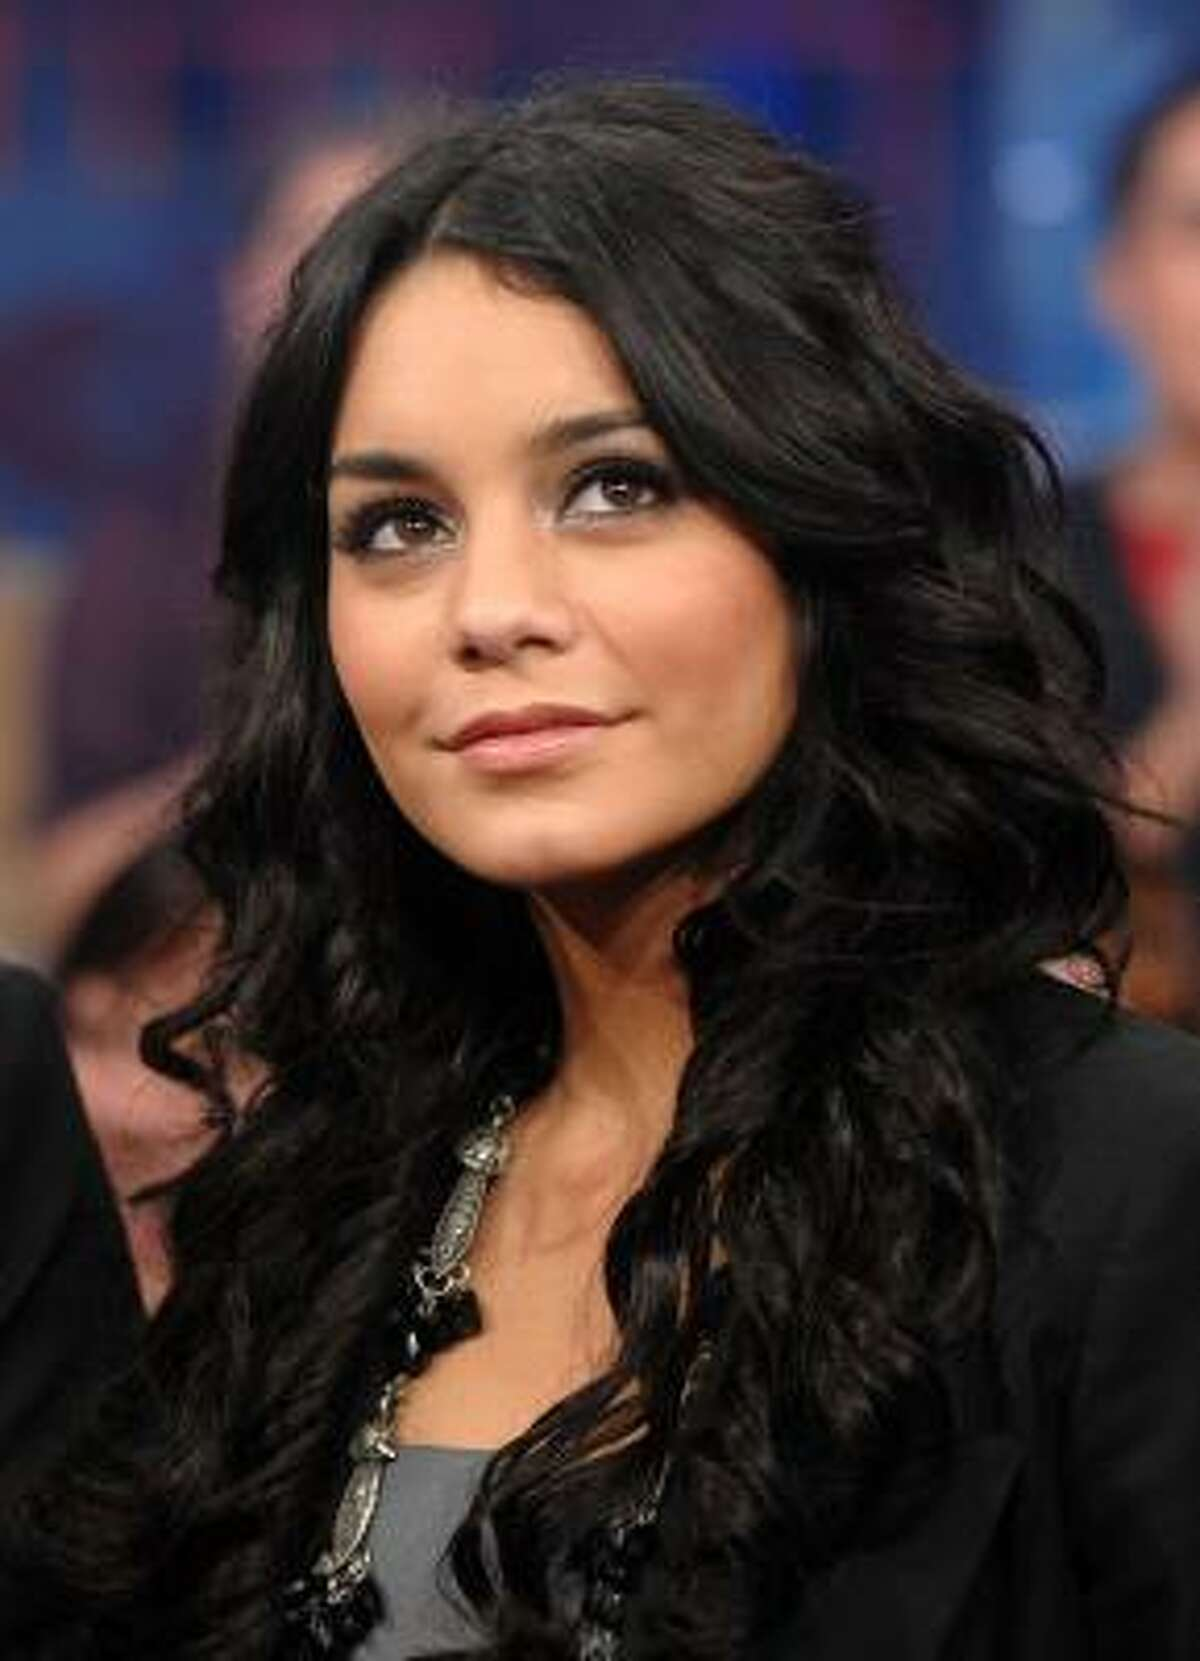 Vanessa Hudgens, pictured, co-stars in High School Musical 3: Senior Year with Zac Efron and Ashley Tisdale.